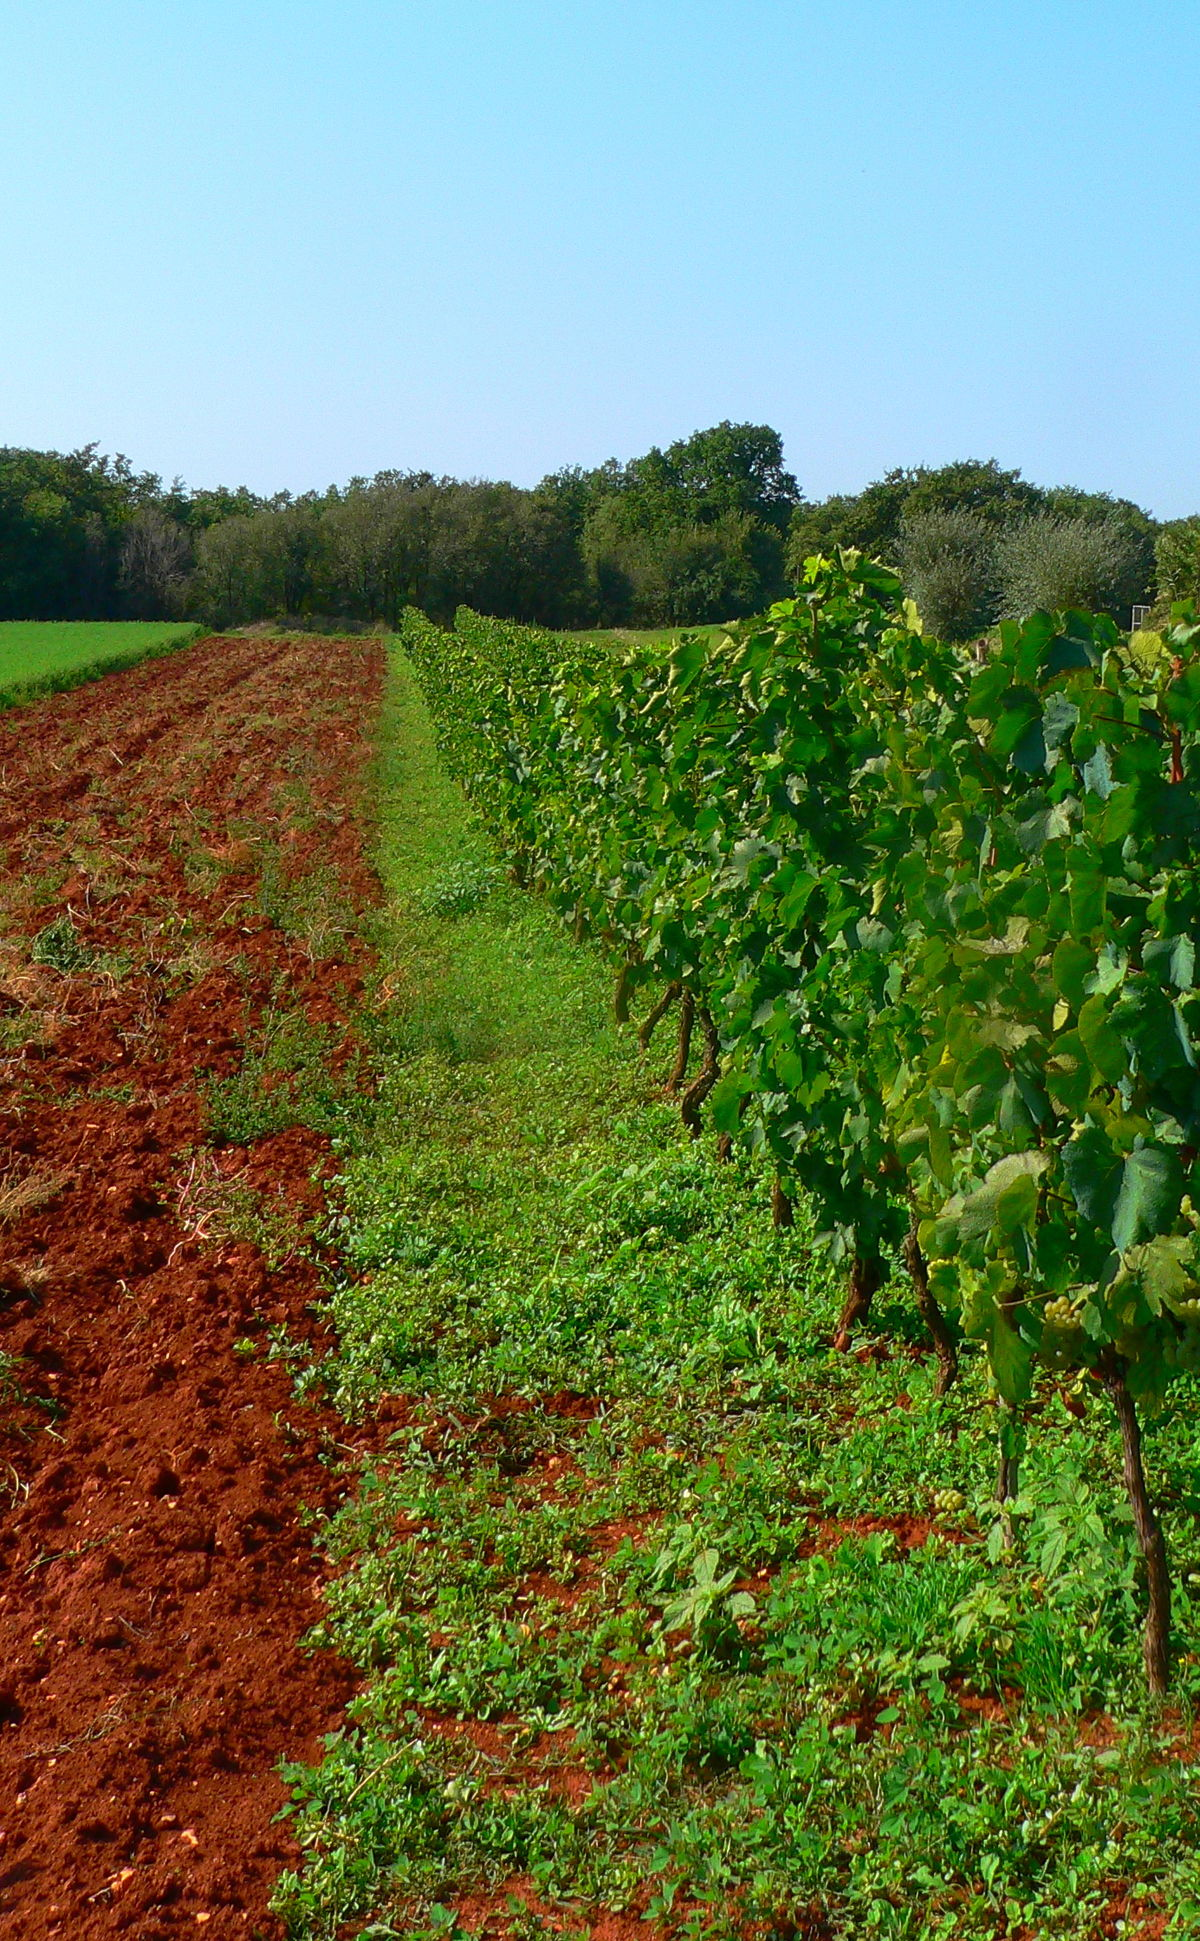 Terra rossa soil wikipedia for Different types of soil wikipedia